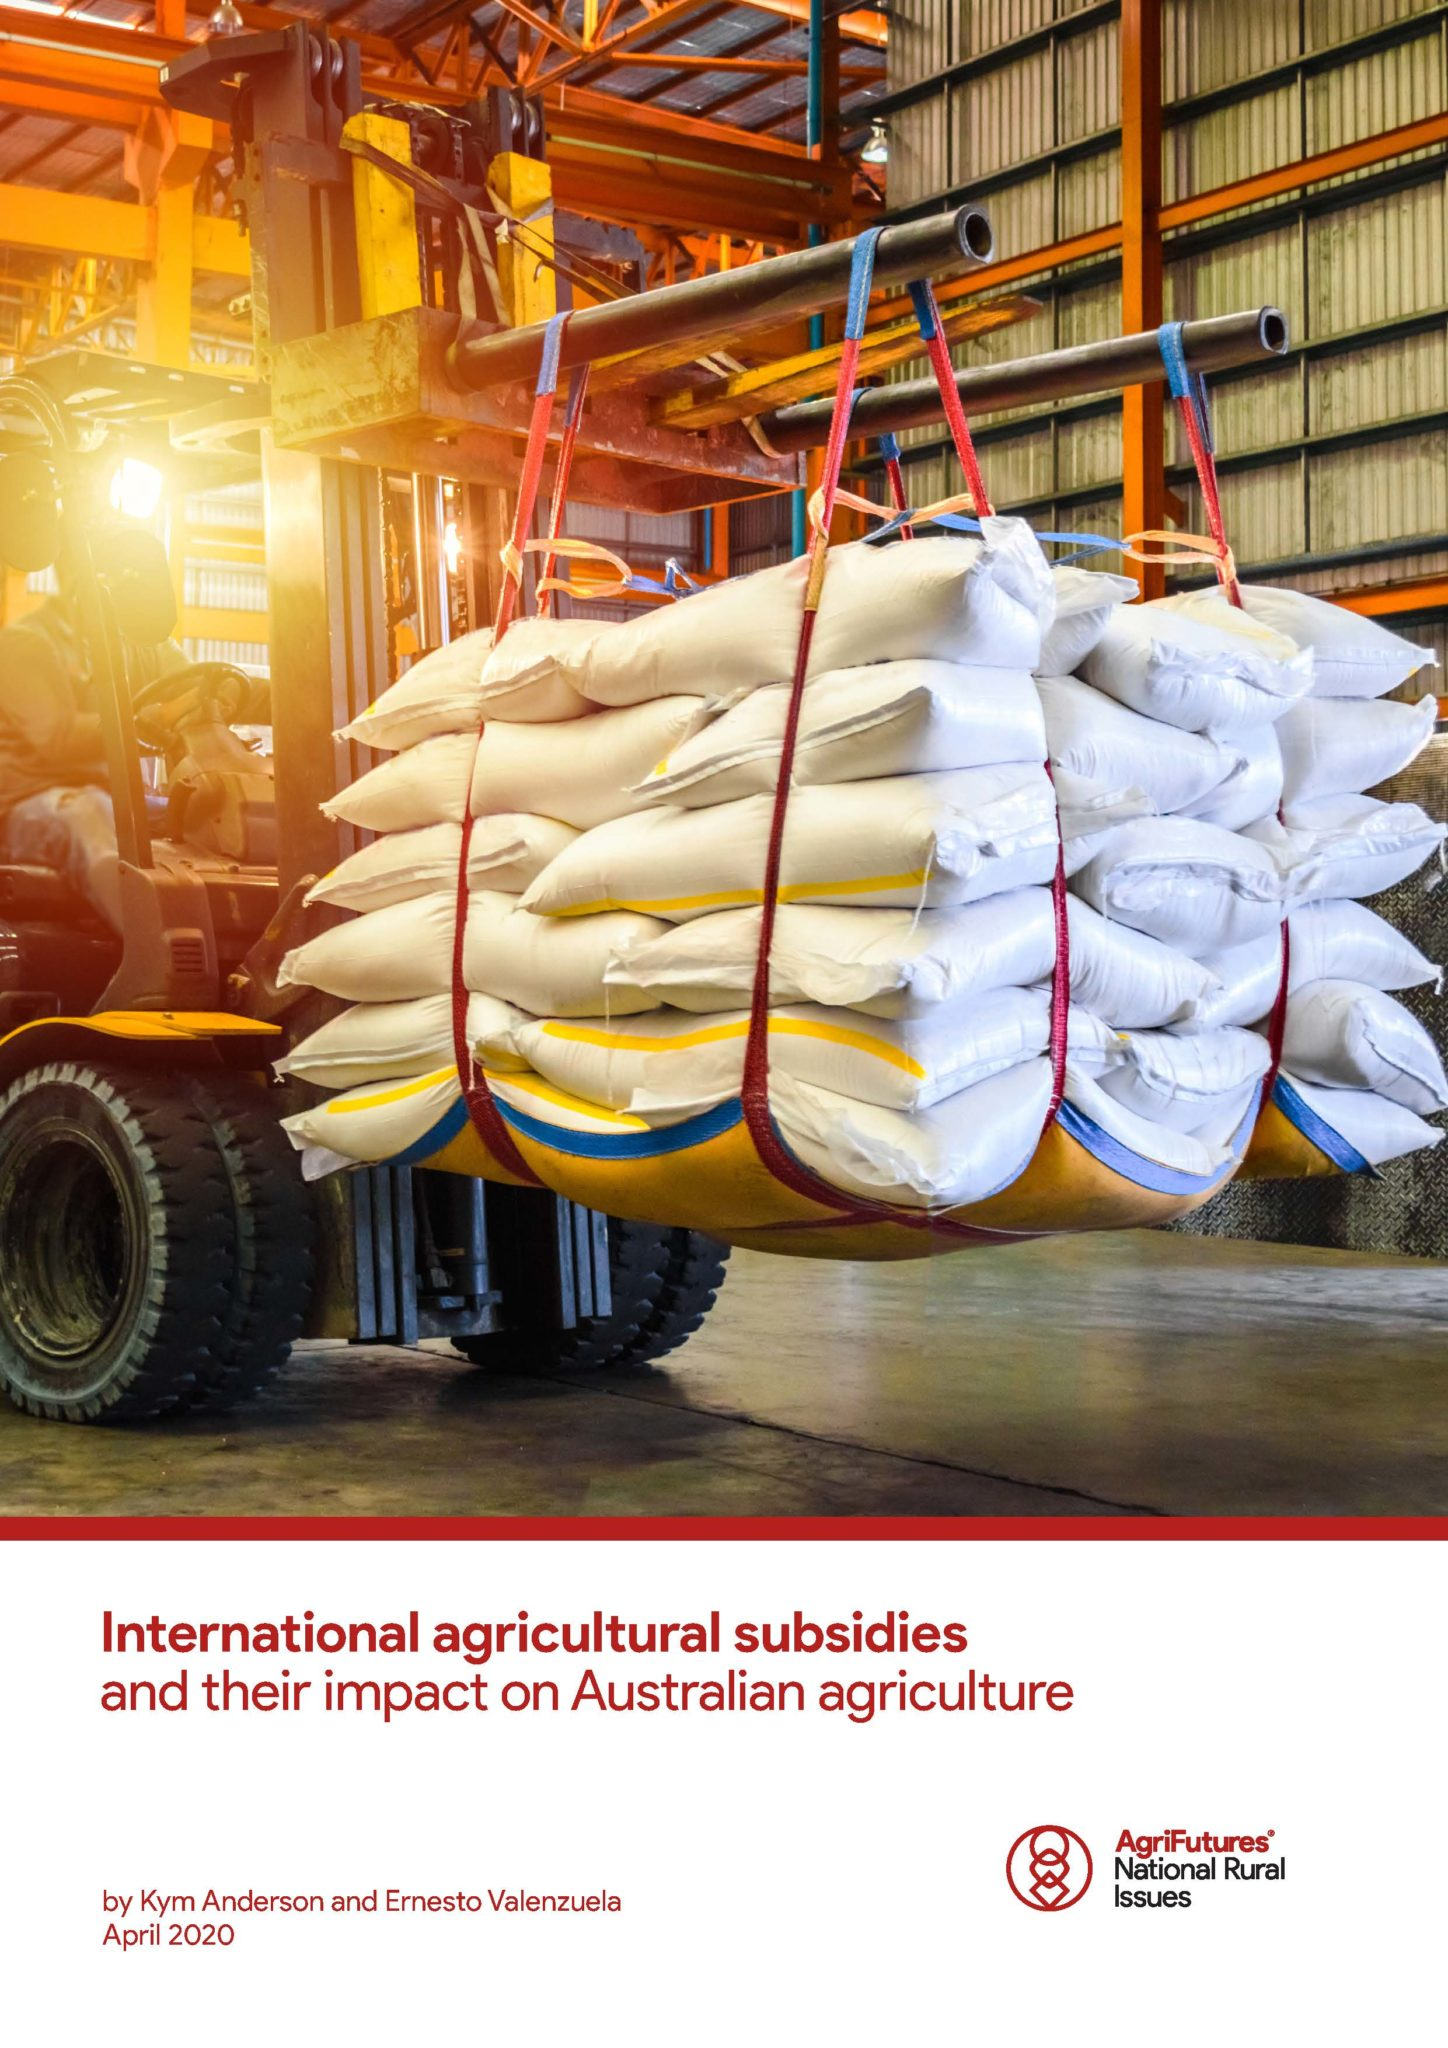 International agricultural subsidies and their impact on Australian agriculture - image